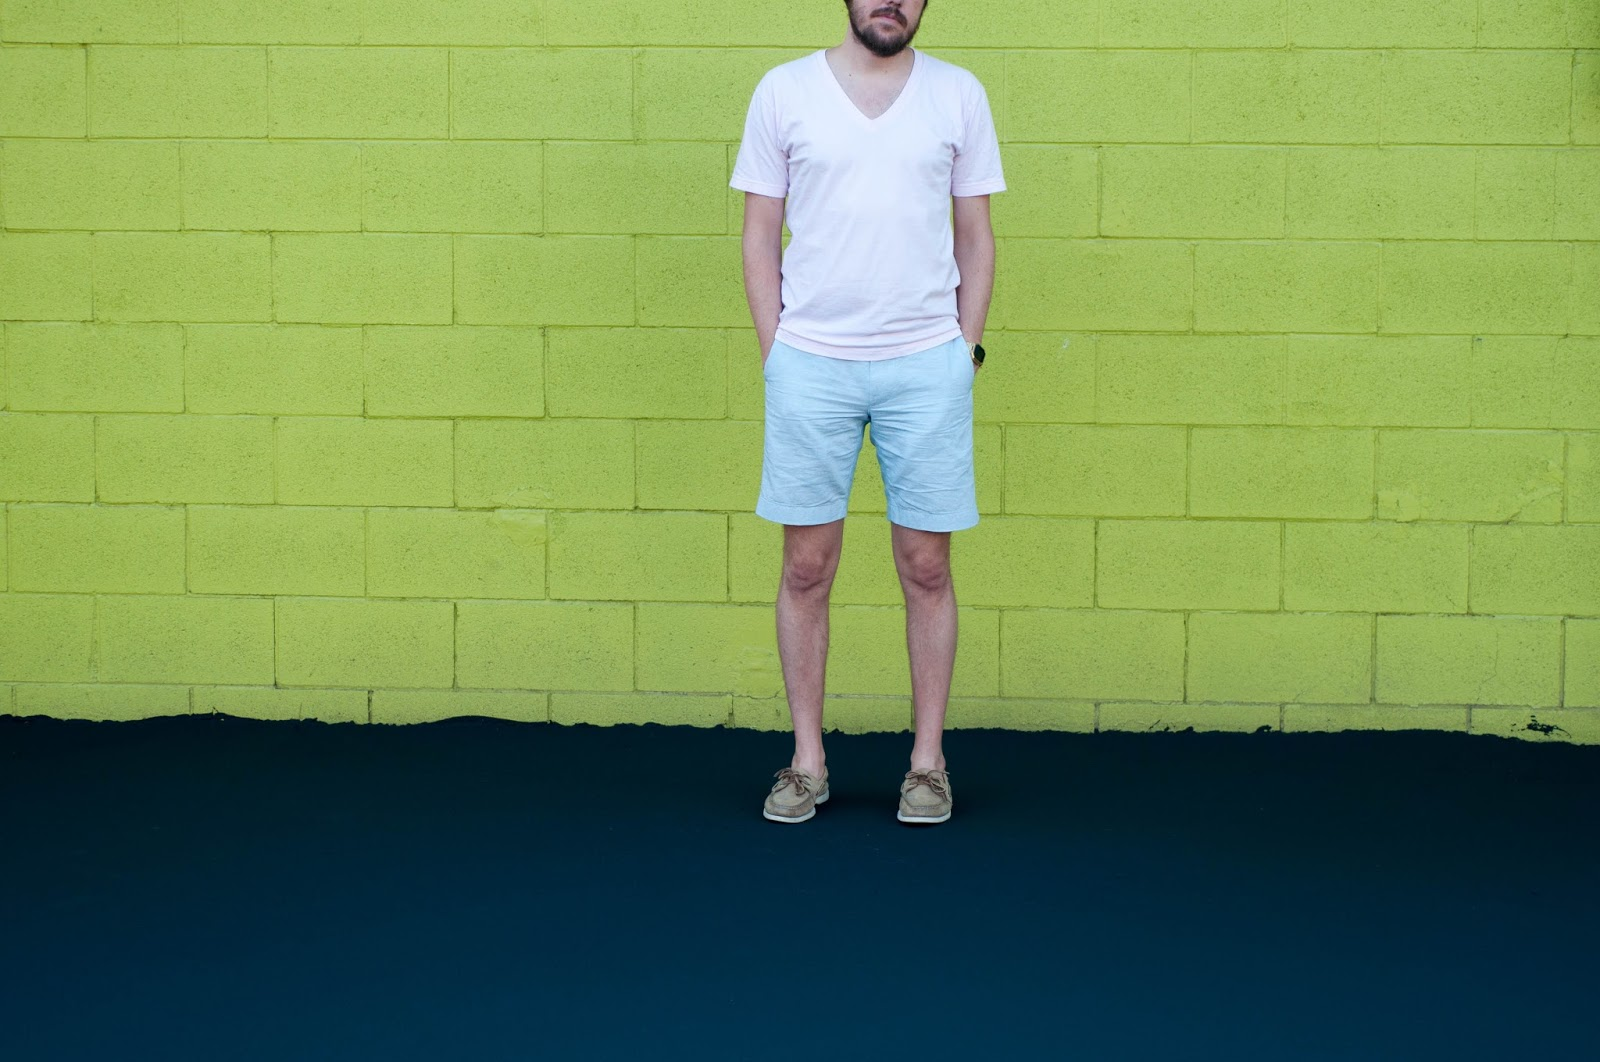 jcrew stanton shorts, american apparel v neck, sperry topsider, boat shoes, ootd, mens fashion